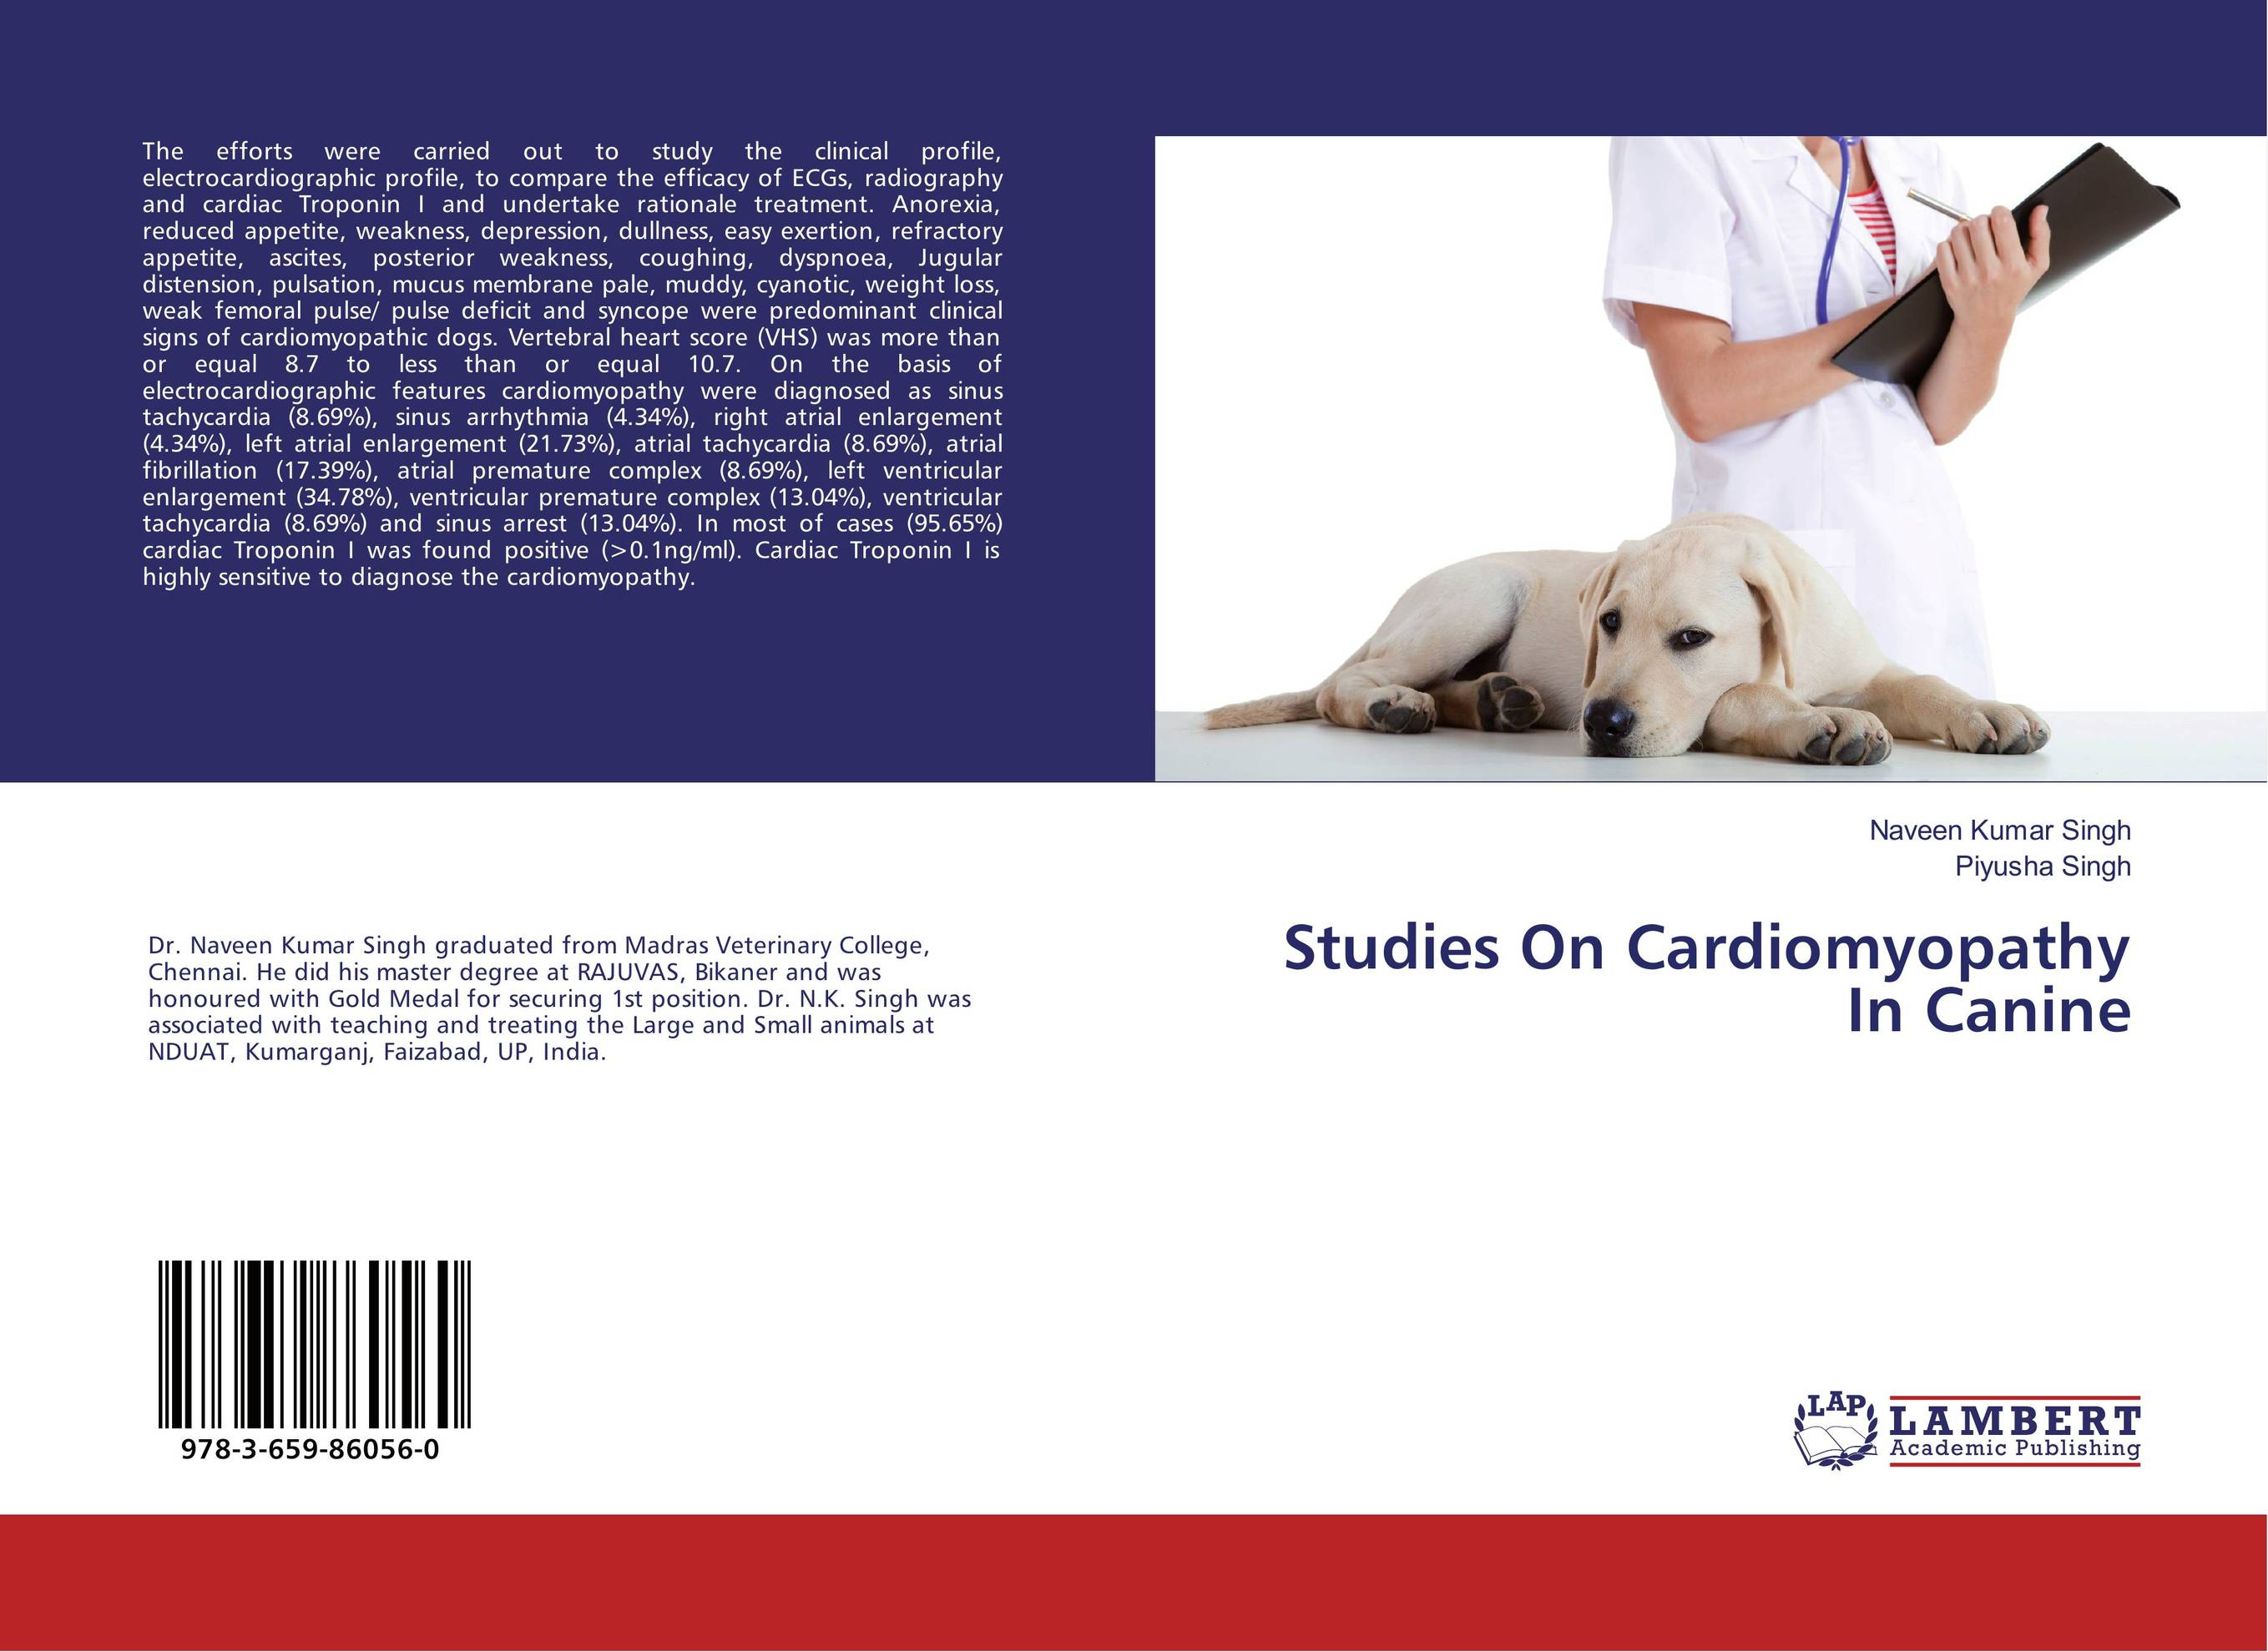 Studies On Cardiomyopathy In Canine